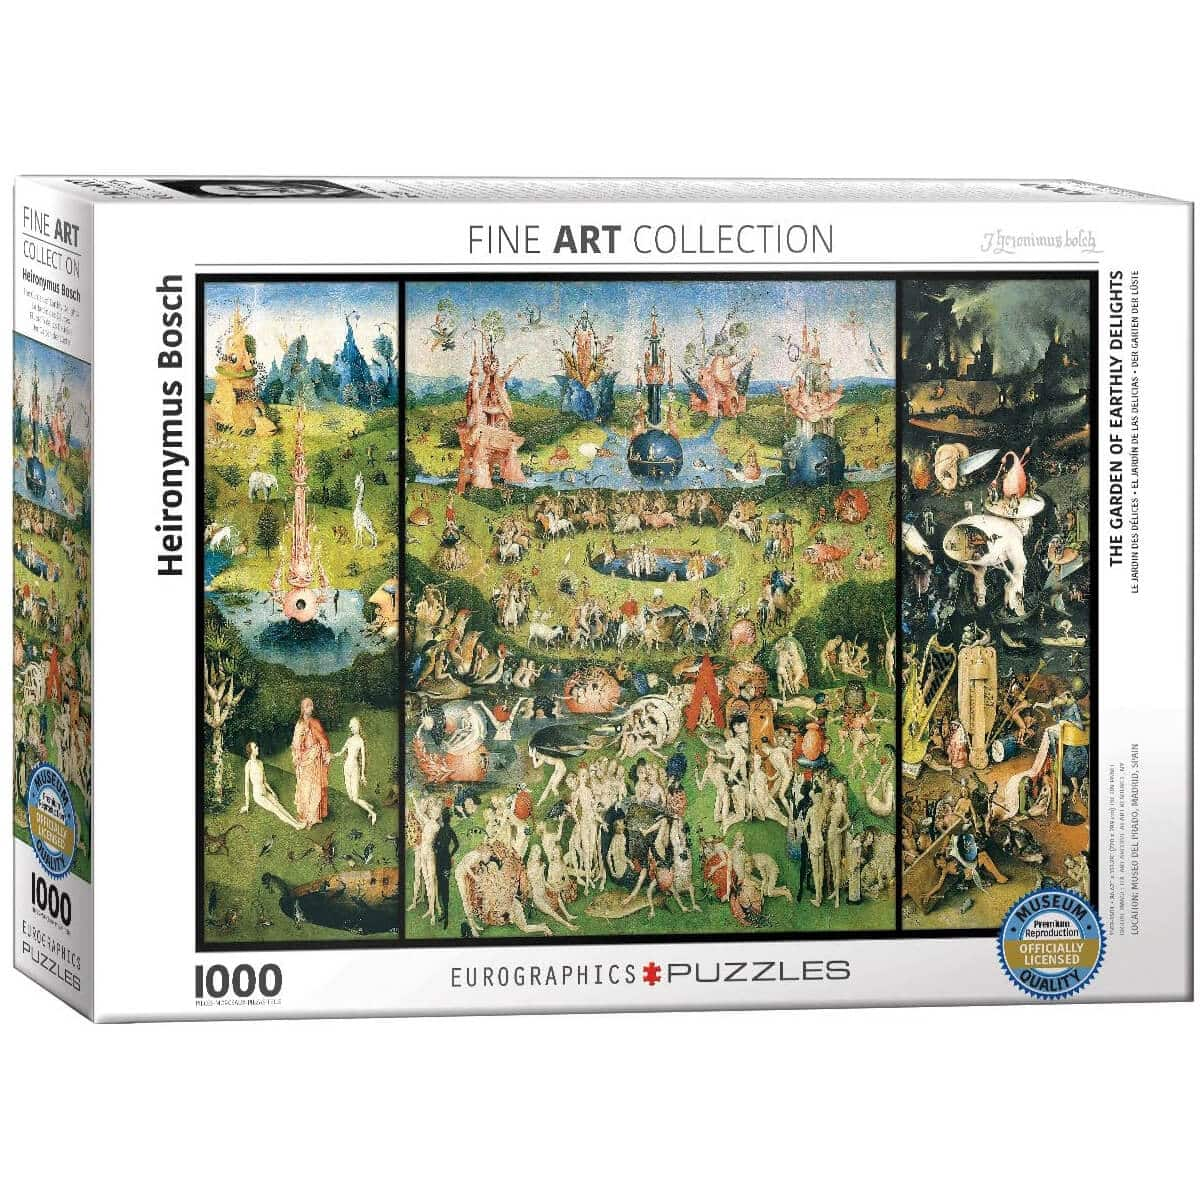 EuroGraphics The Garden of Earthly Delights by Heironymus Bosch (1000 Piece) Puzzle